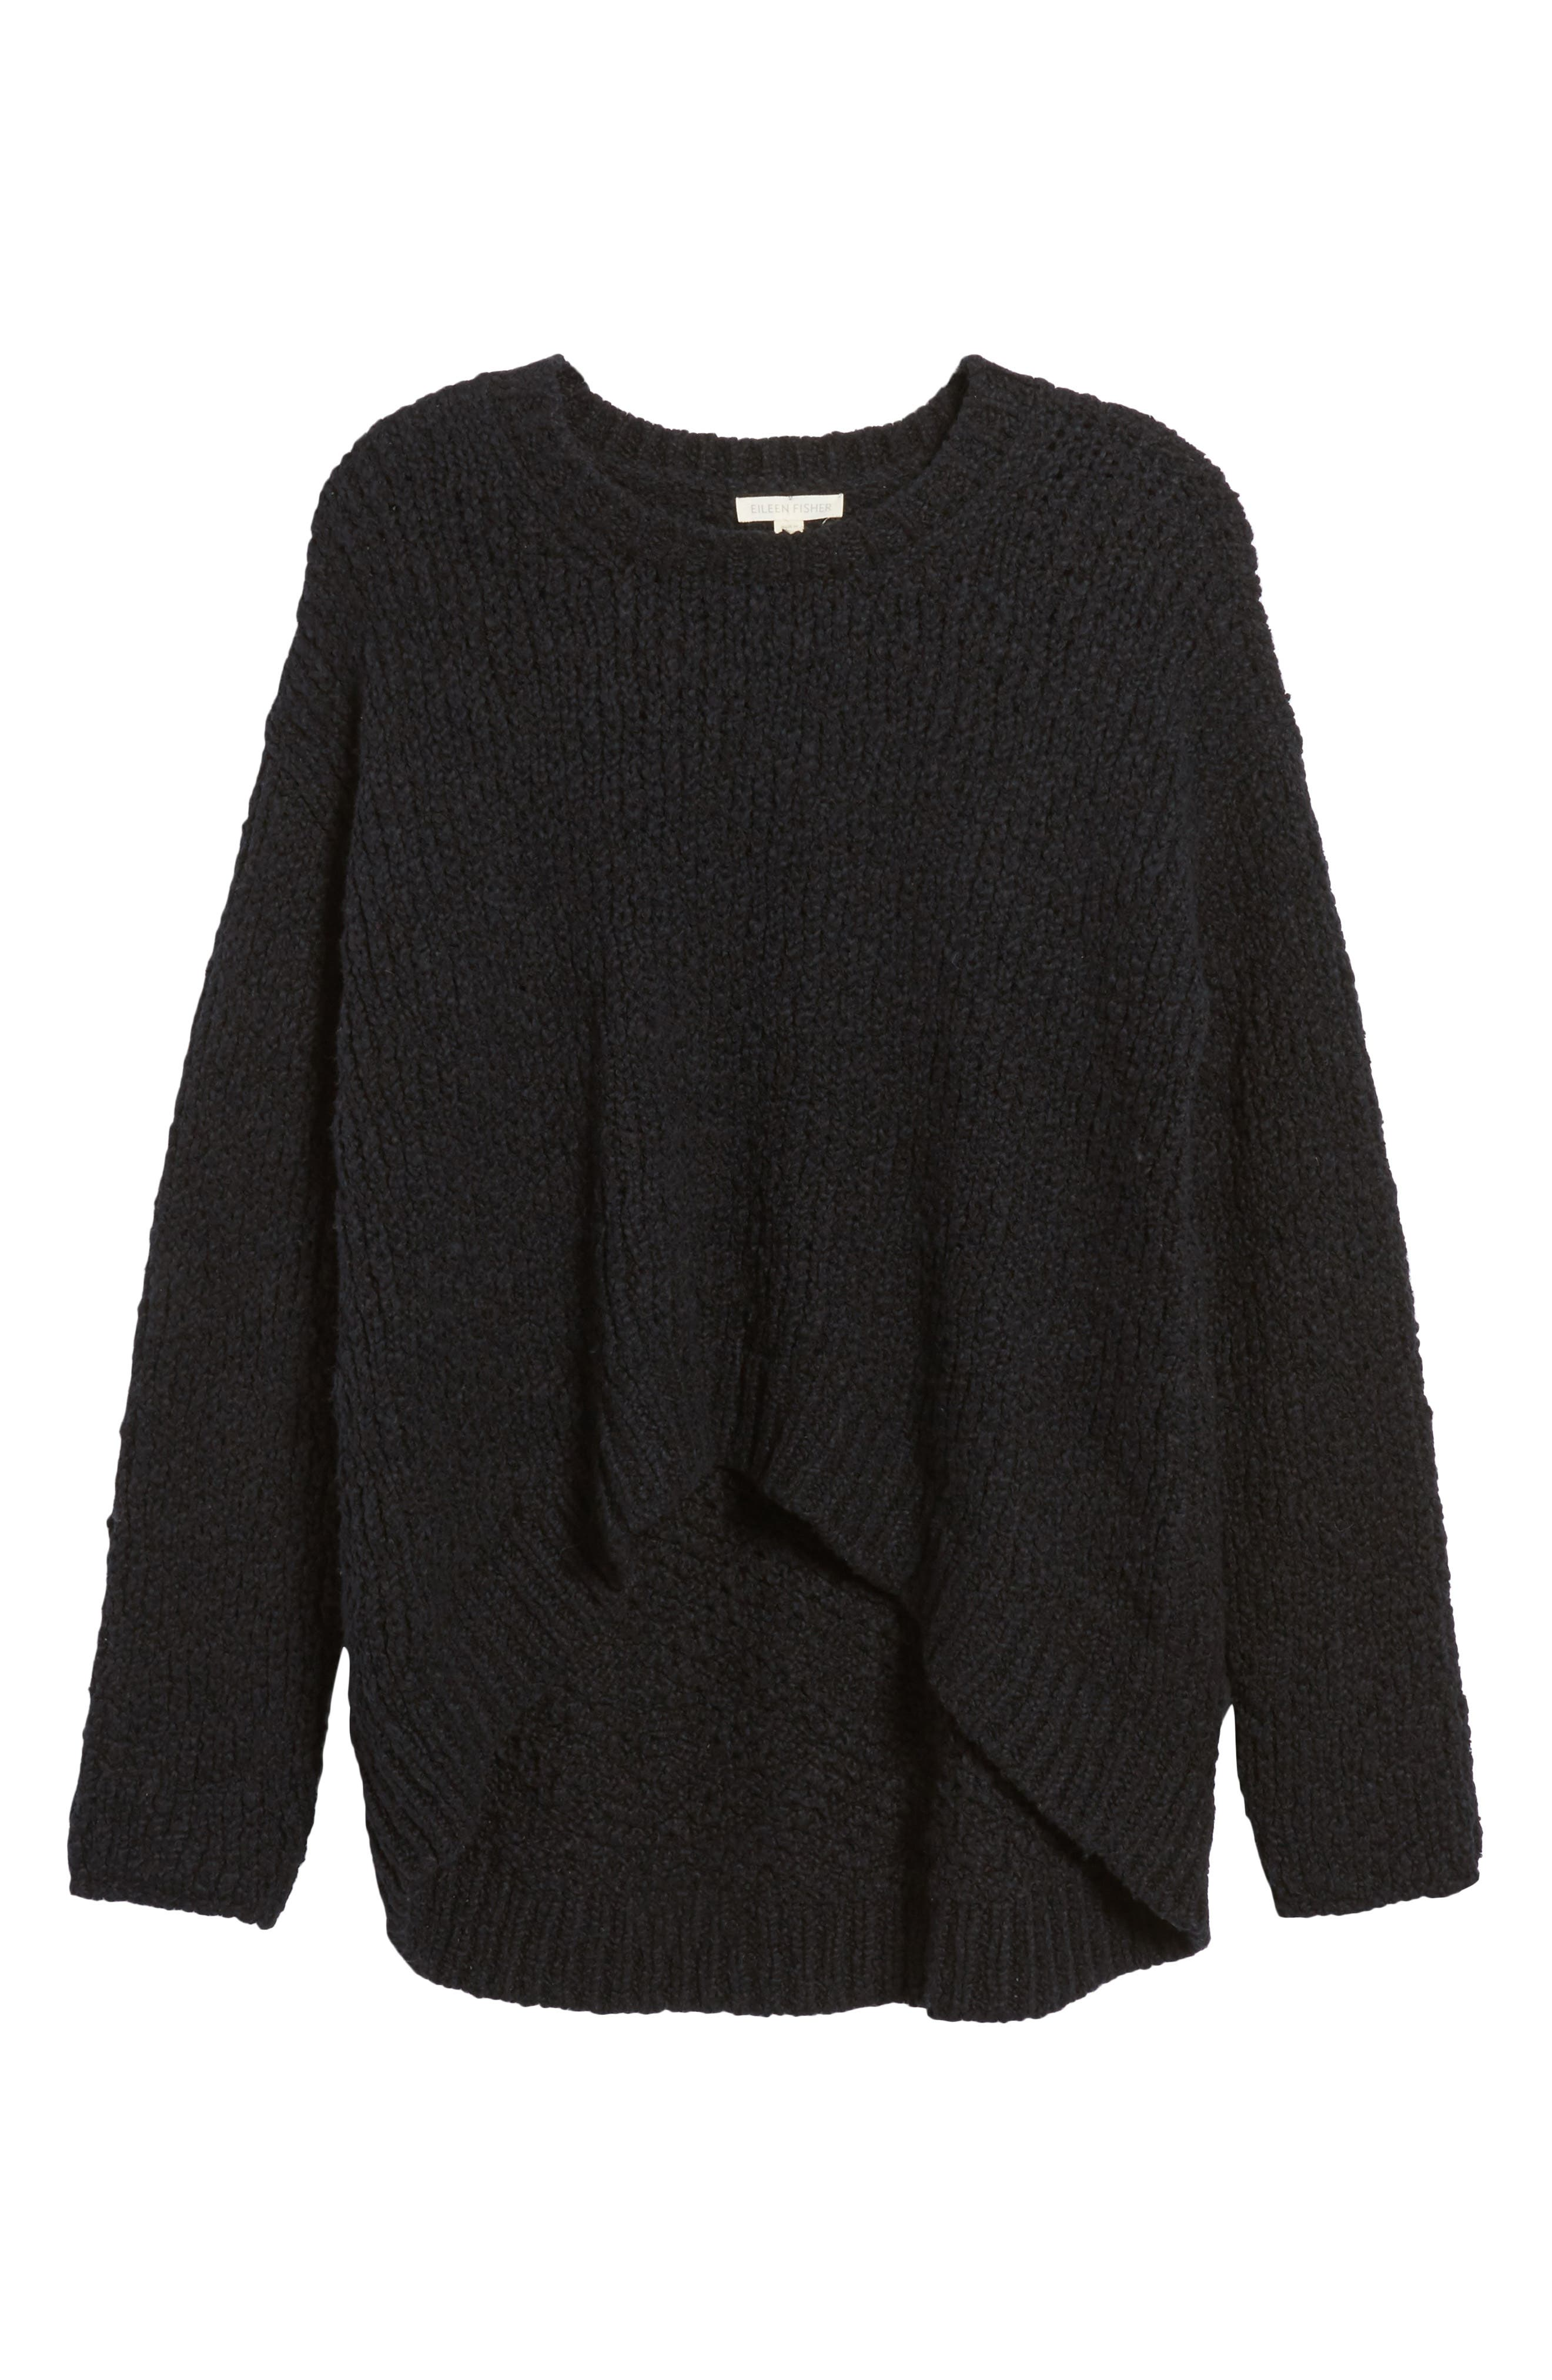 High/Low Organic Cotton Sweater,                             Alternate thumbnail 6, color,                             001